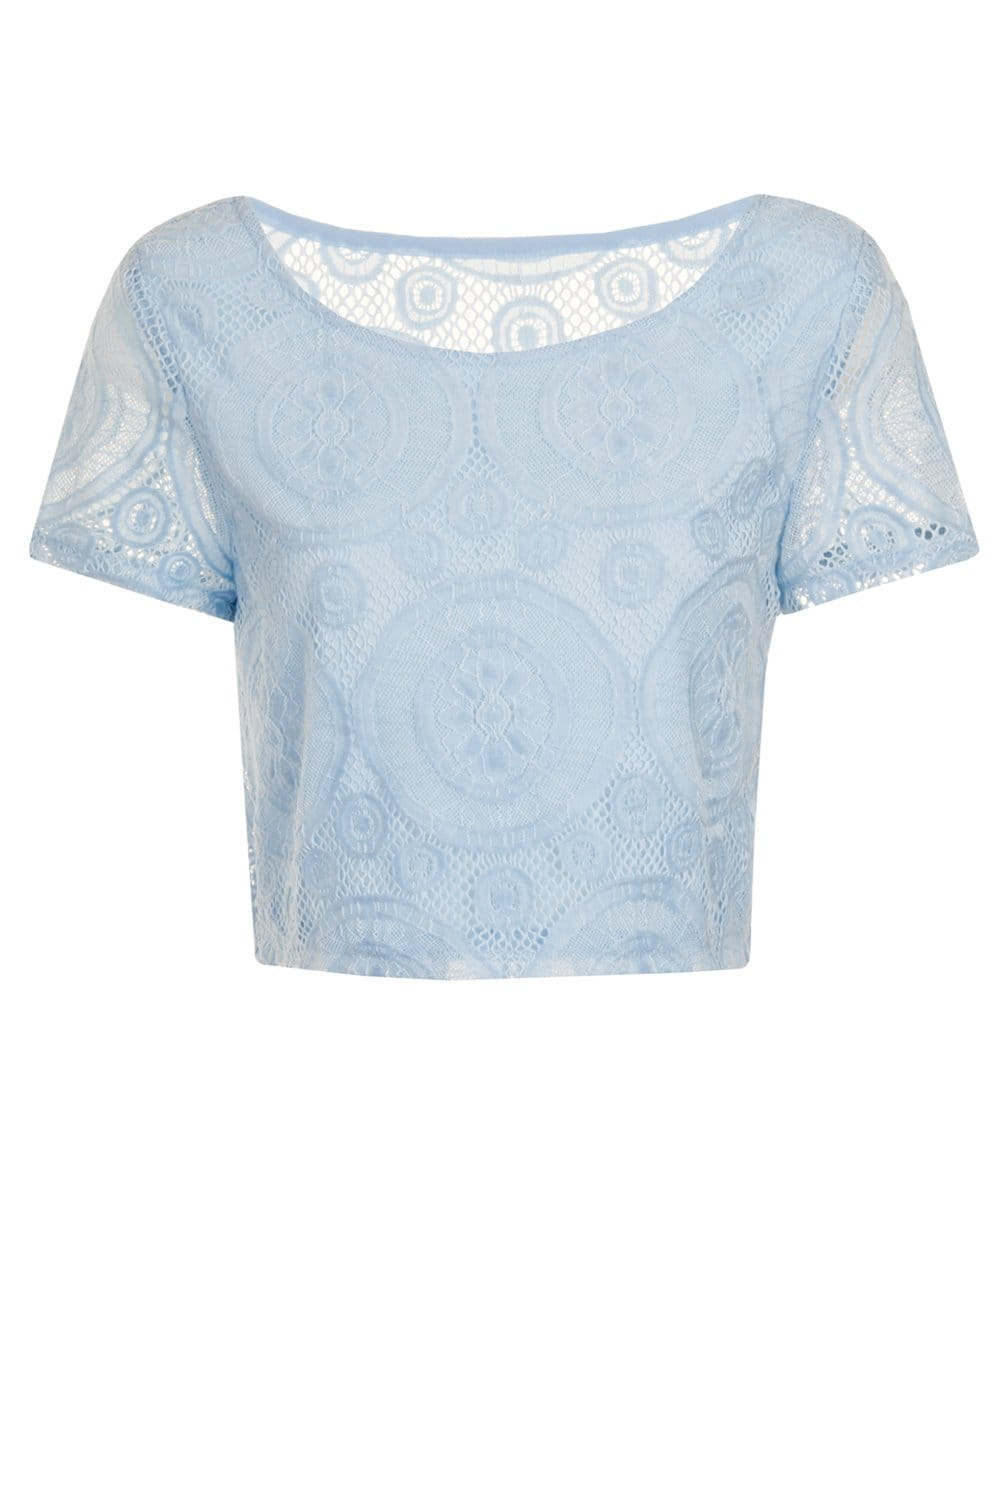 Outlet Girls On Film Nude Cap Sleeve Lace Overlay Crop Top